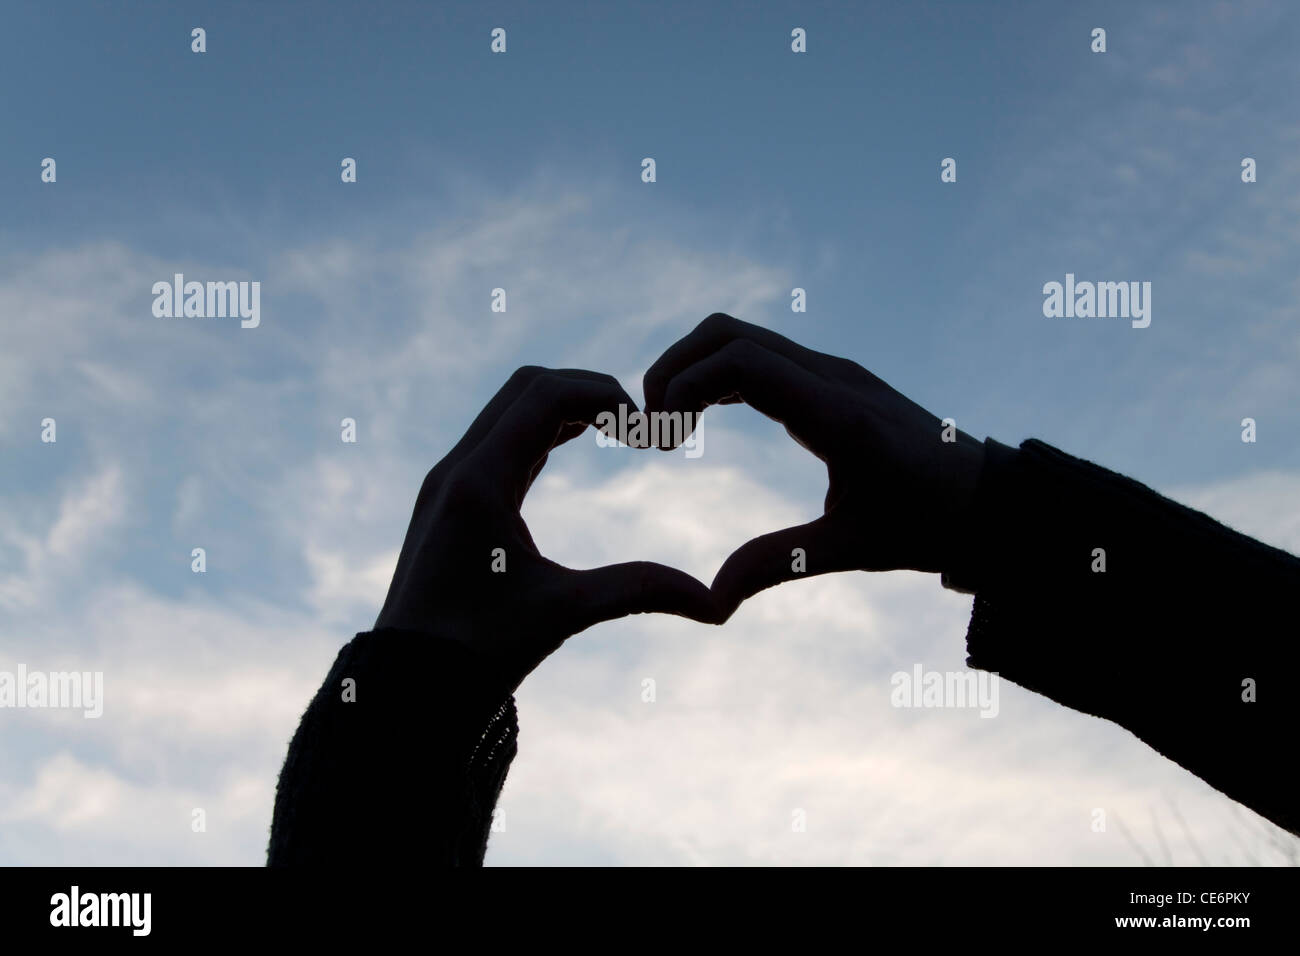 Symbole du coeur Photo Stock